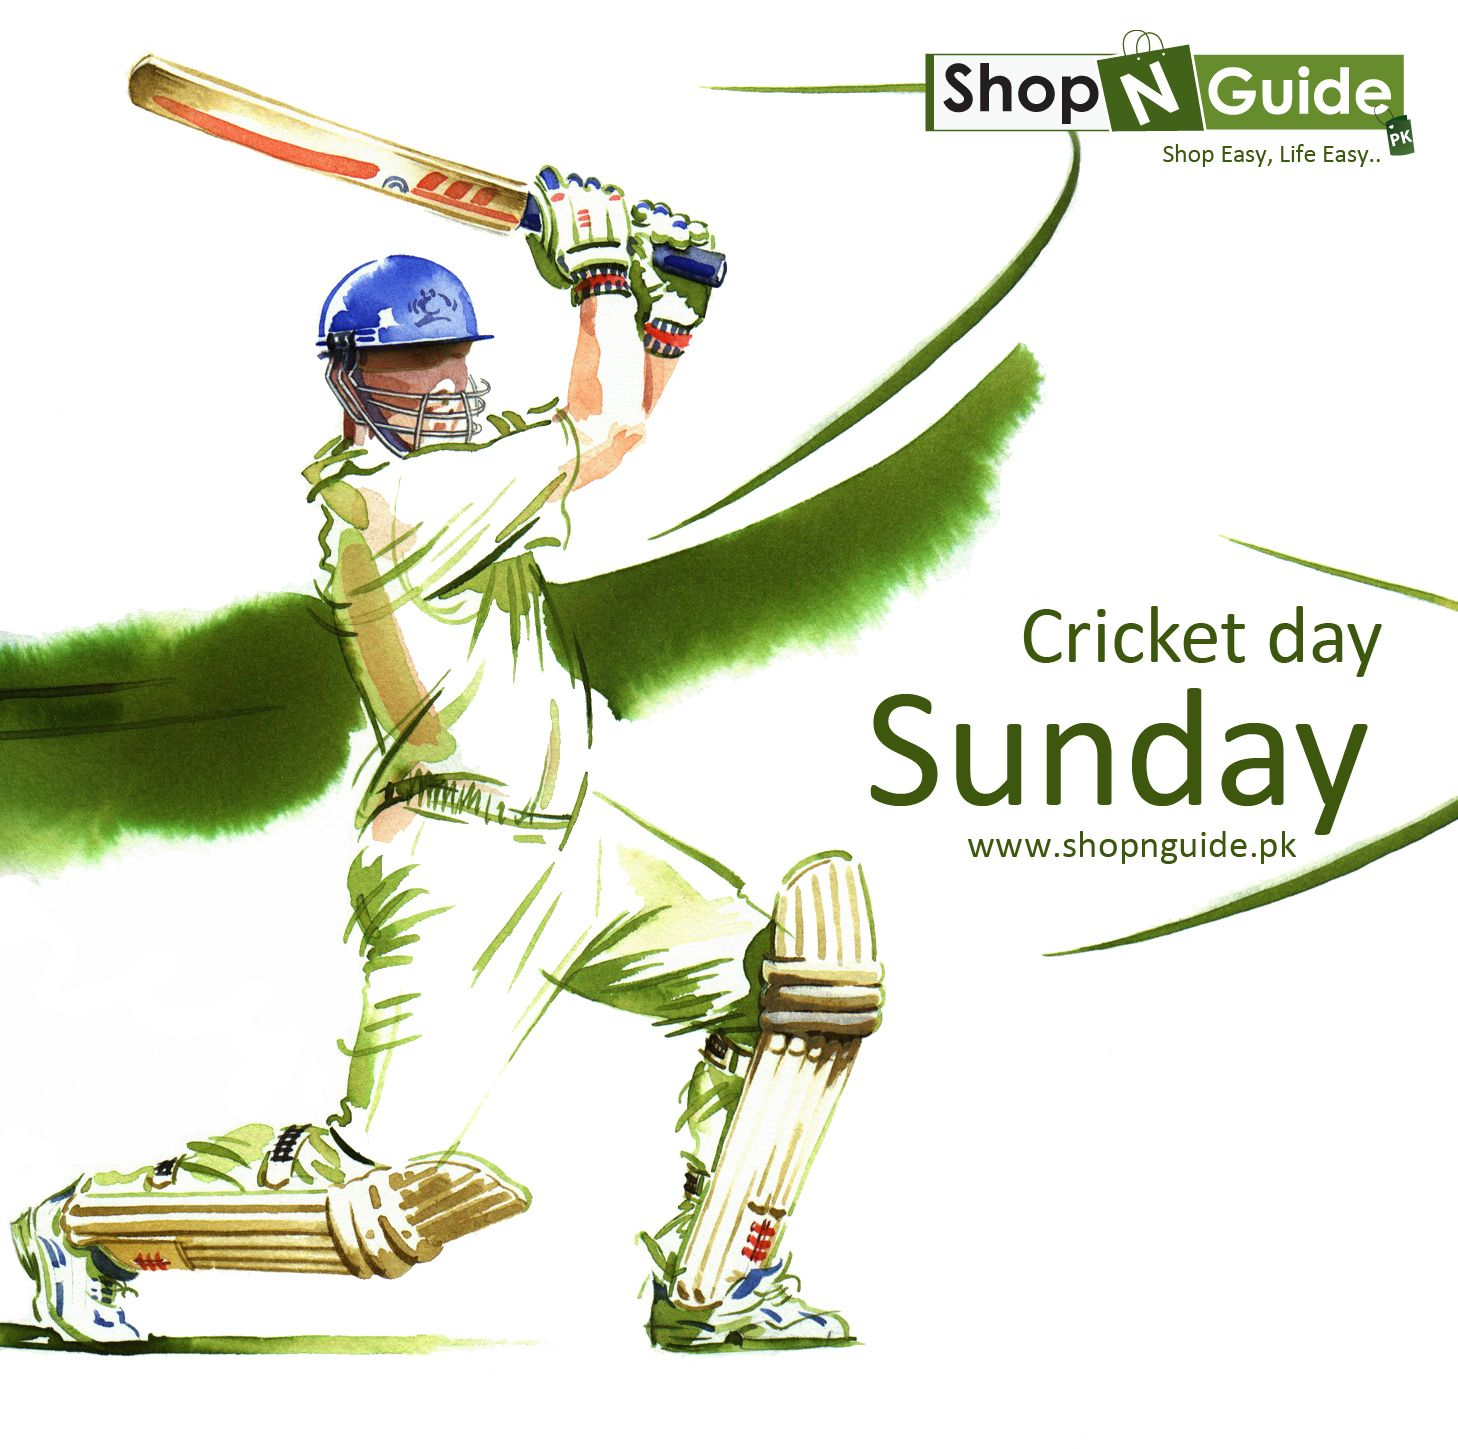 Sunday Cricket Day! Cricket wallpapers, Cricket logo